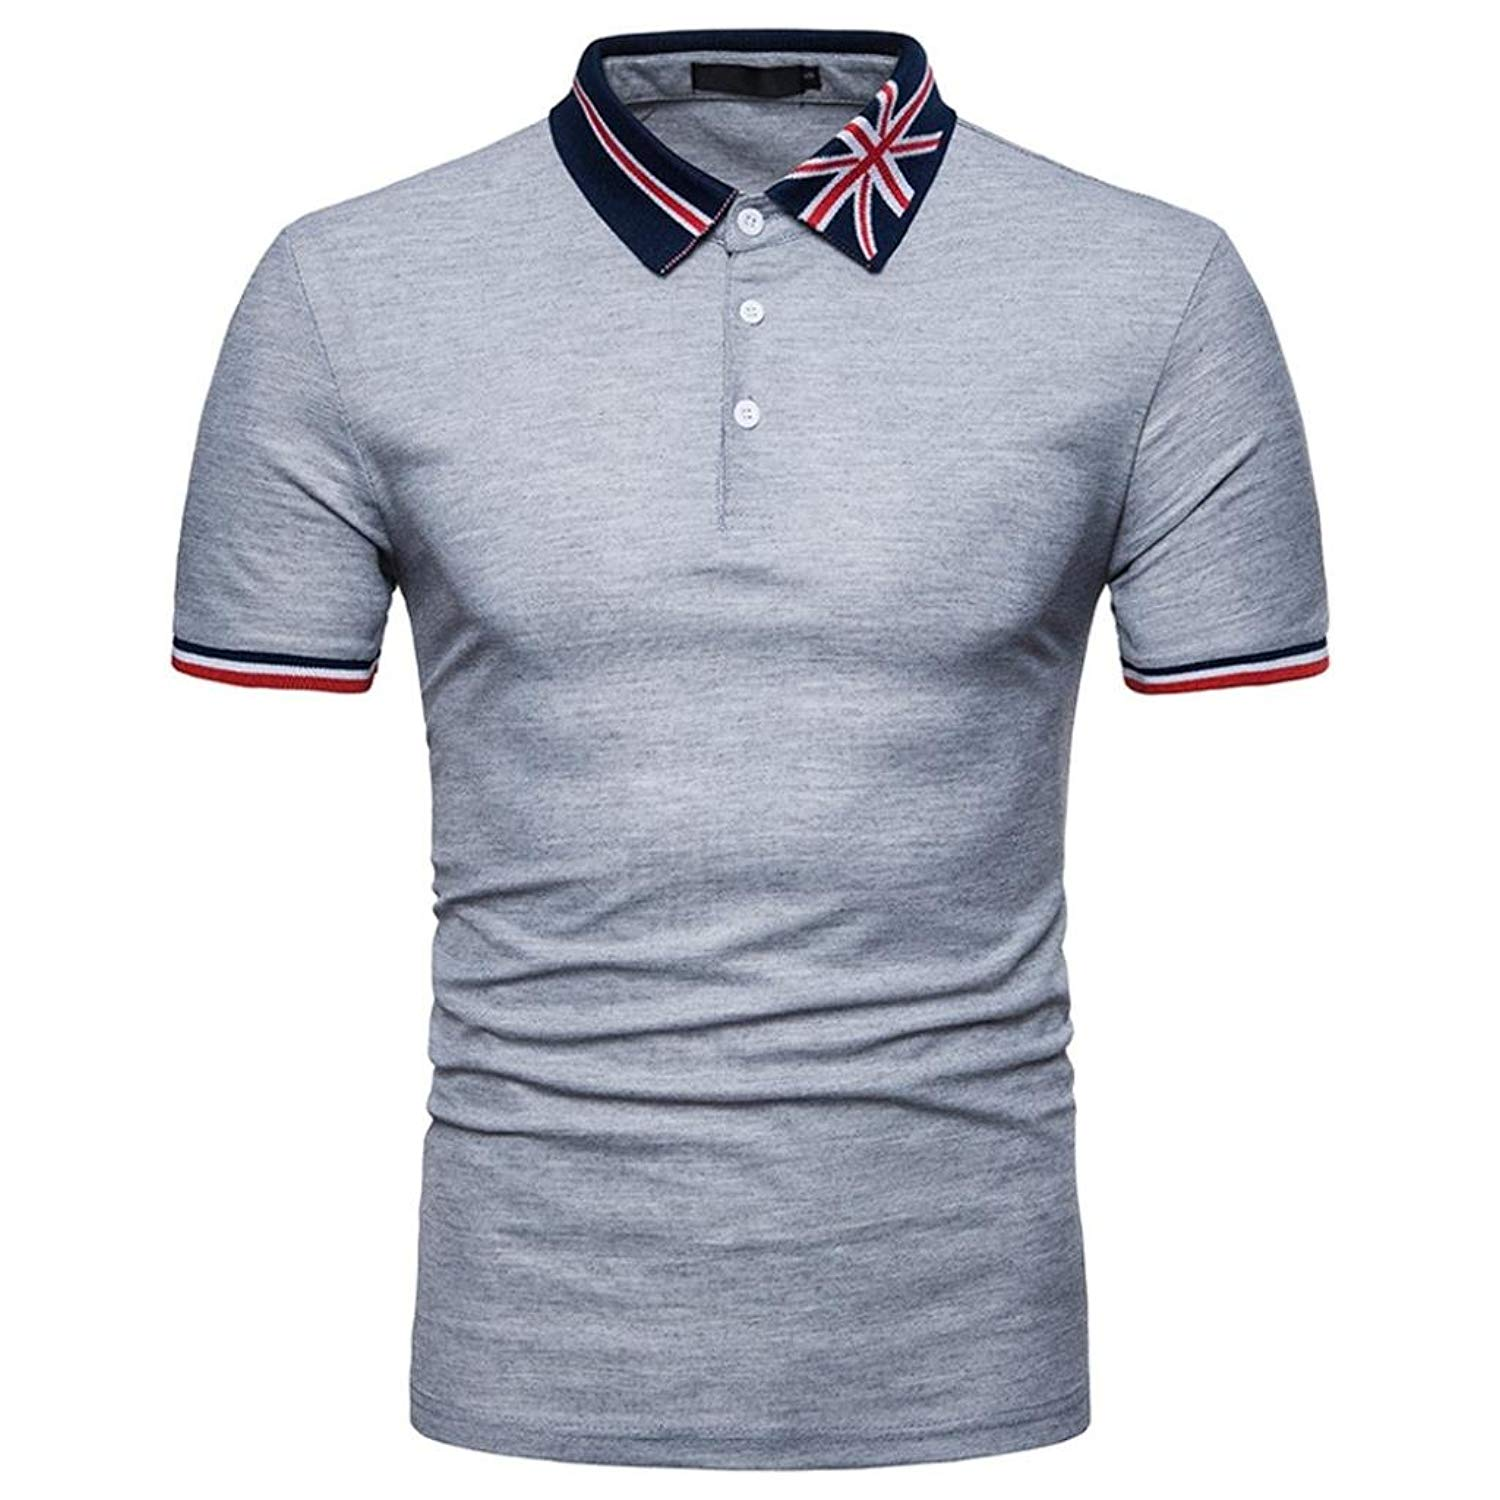 Cheap Polo Mens Shirts Find Polo Mens Shirts Deals On Line At